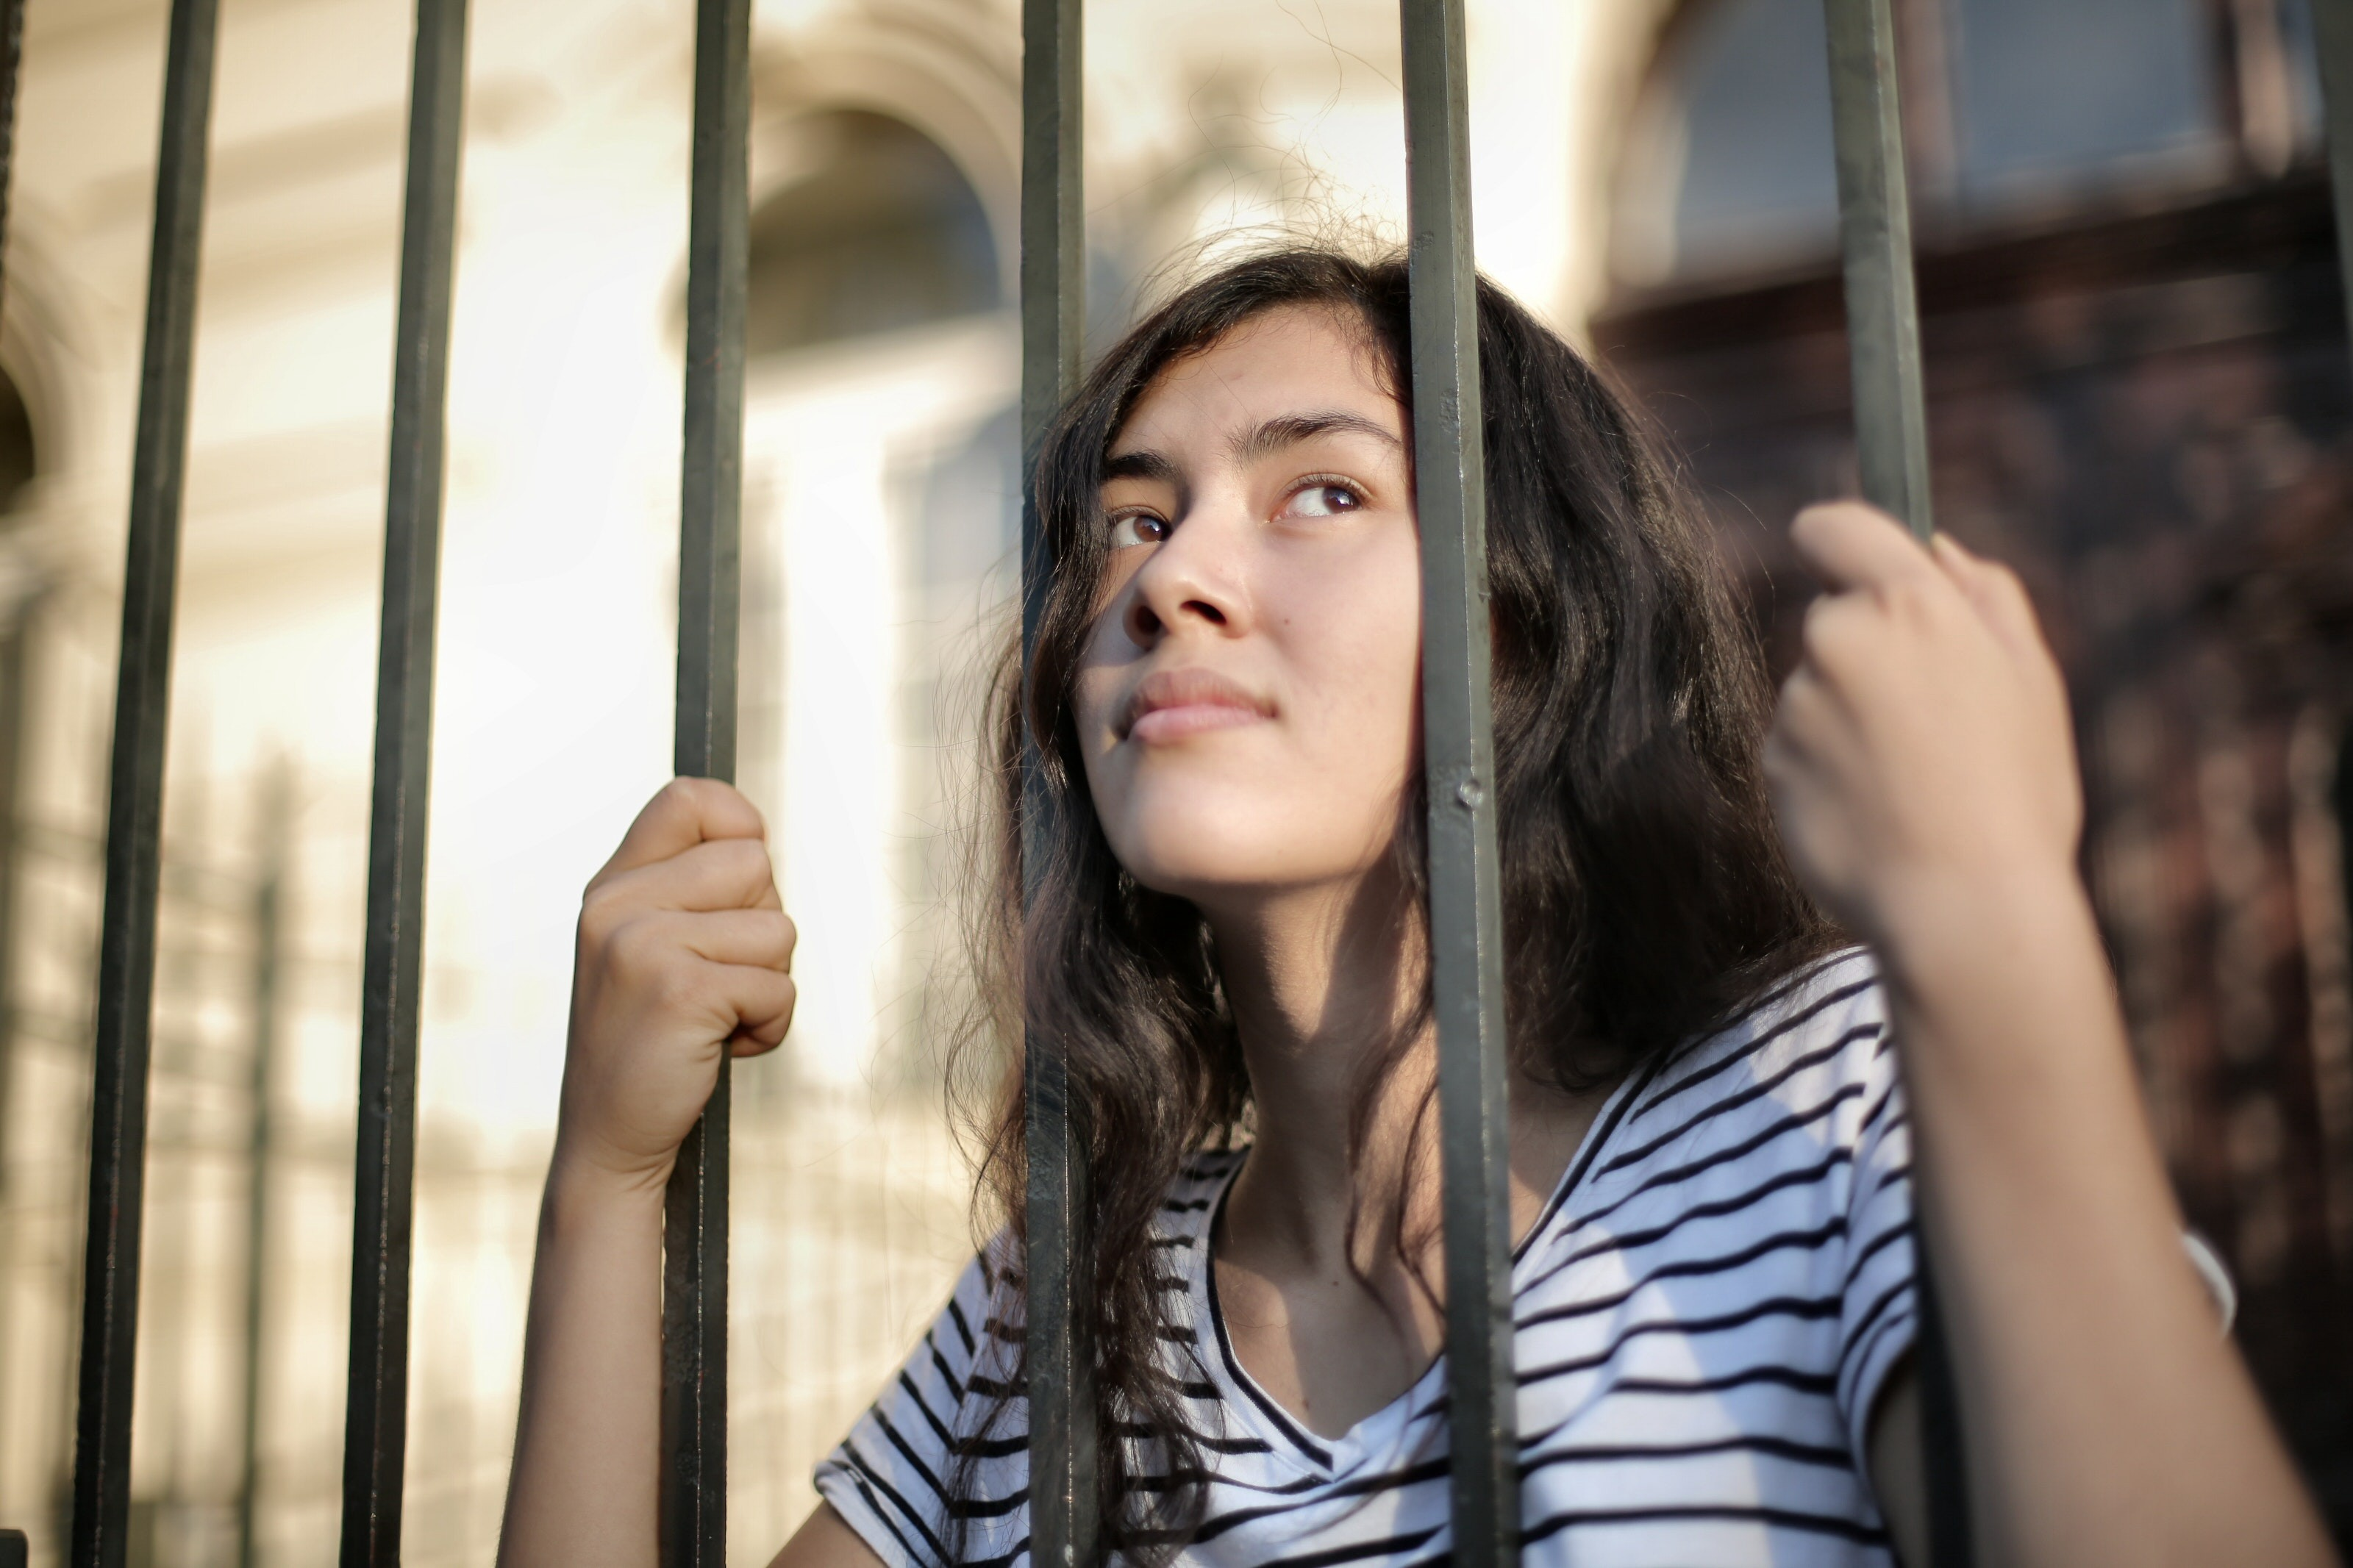 Young woman trapped behind prison bars